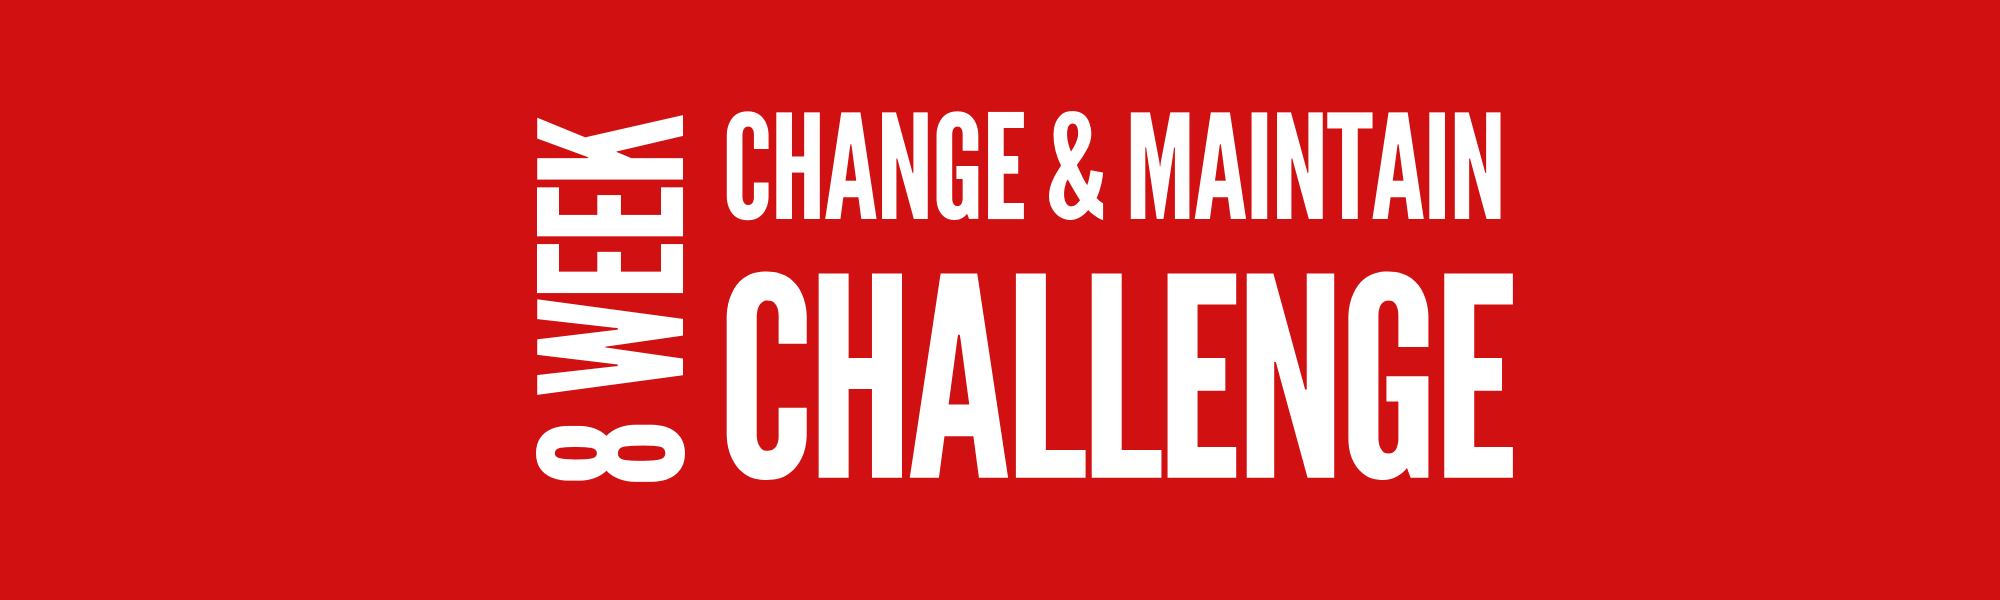 WHY OUR CHALLENGE IS DIFFERENT